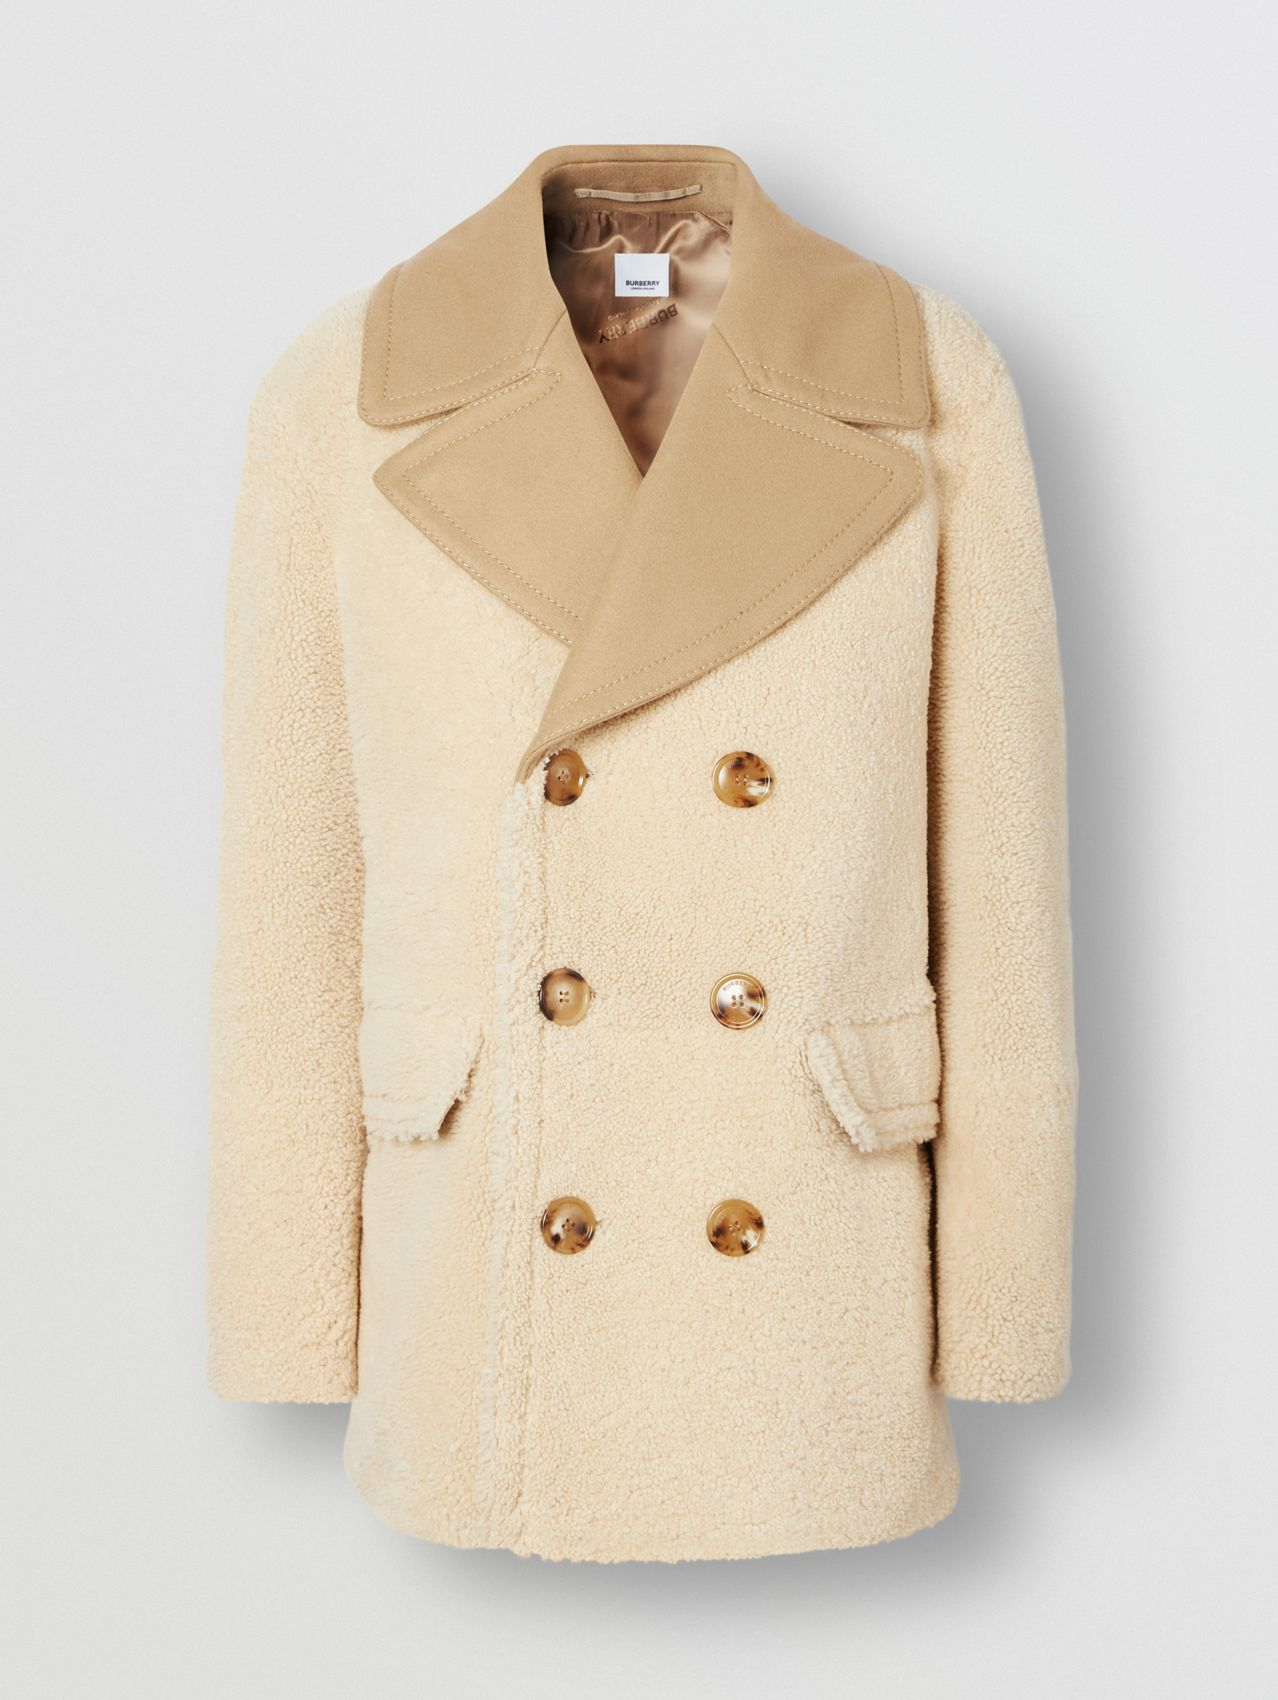 Contrast Wool Collar Shearling Pea Coat in Sesame